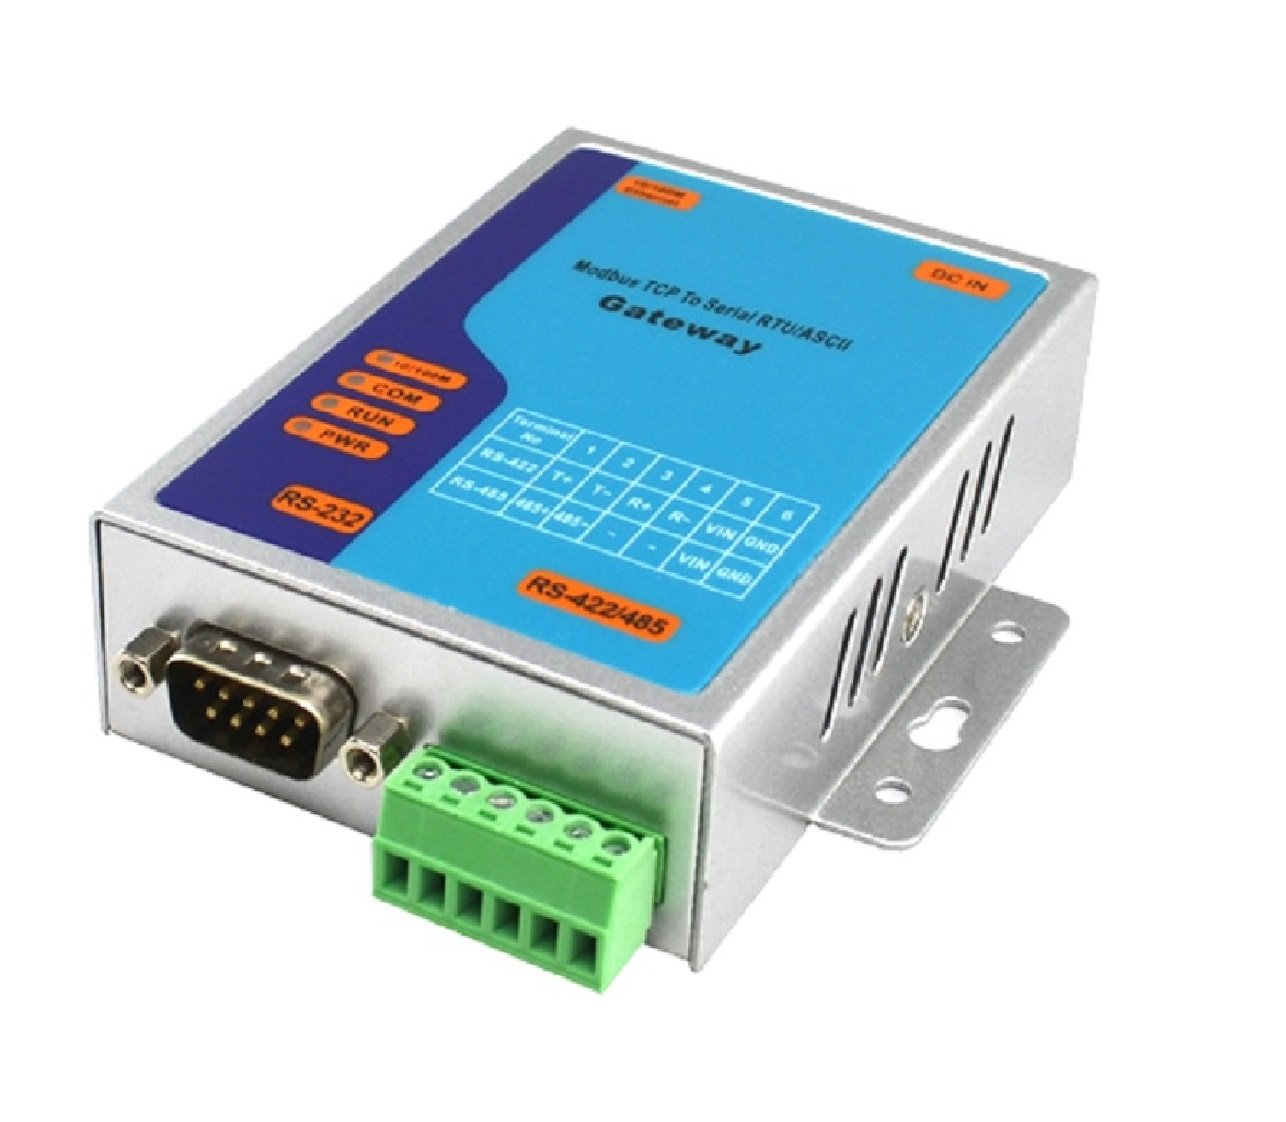 Amazon.com: Modbus TCP to RS485 with 3-in-1 RS-232/RS-422/RS-485 ...